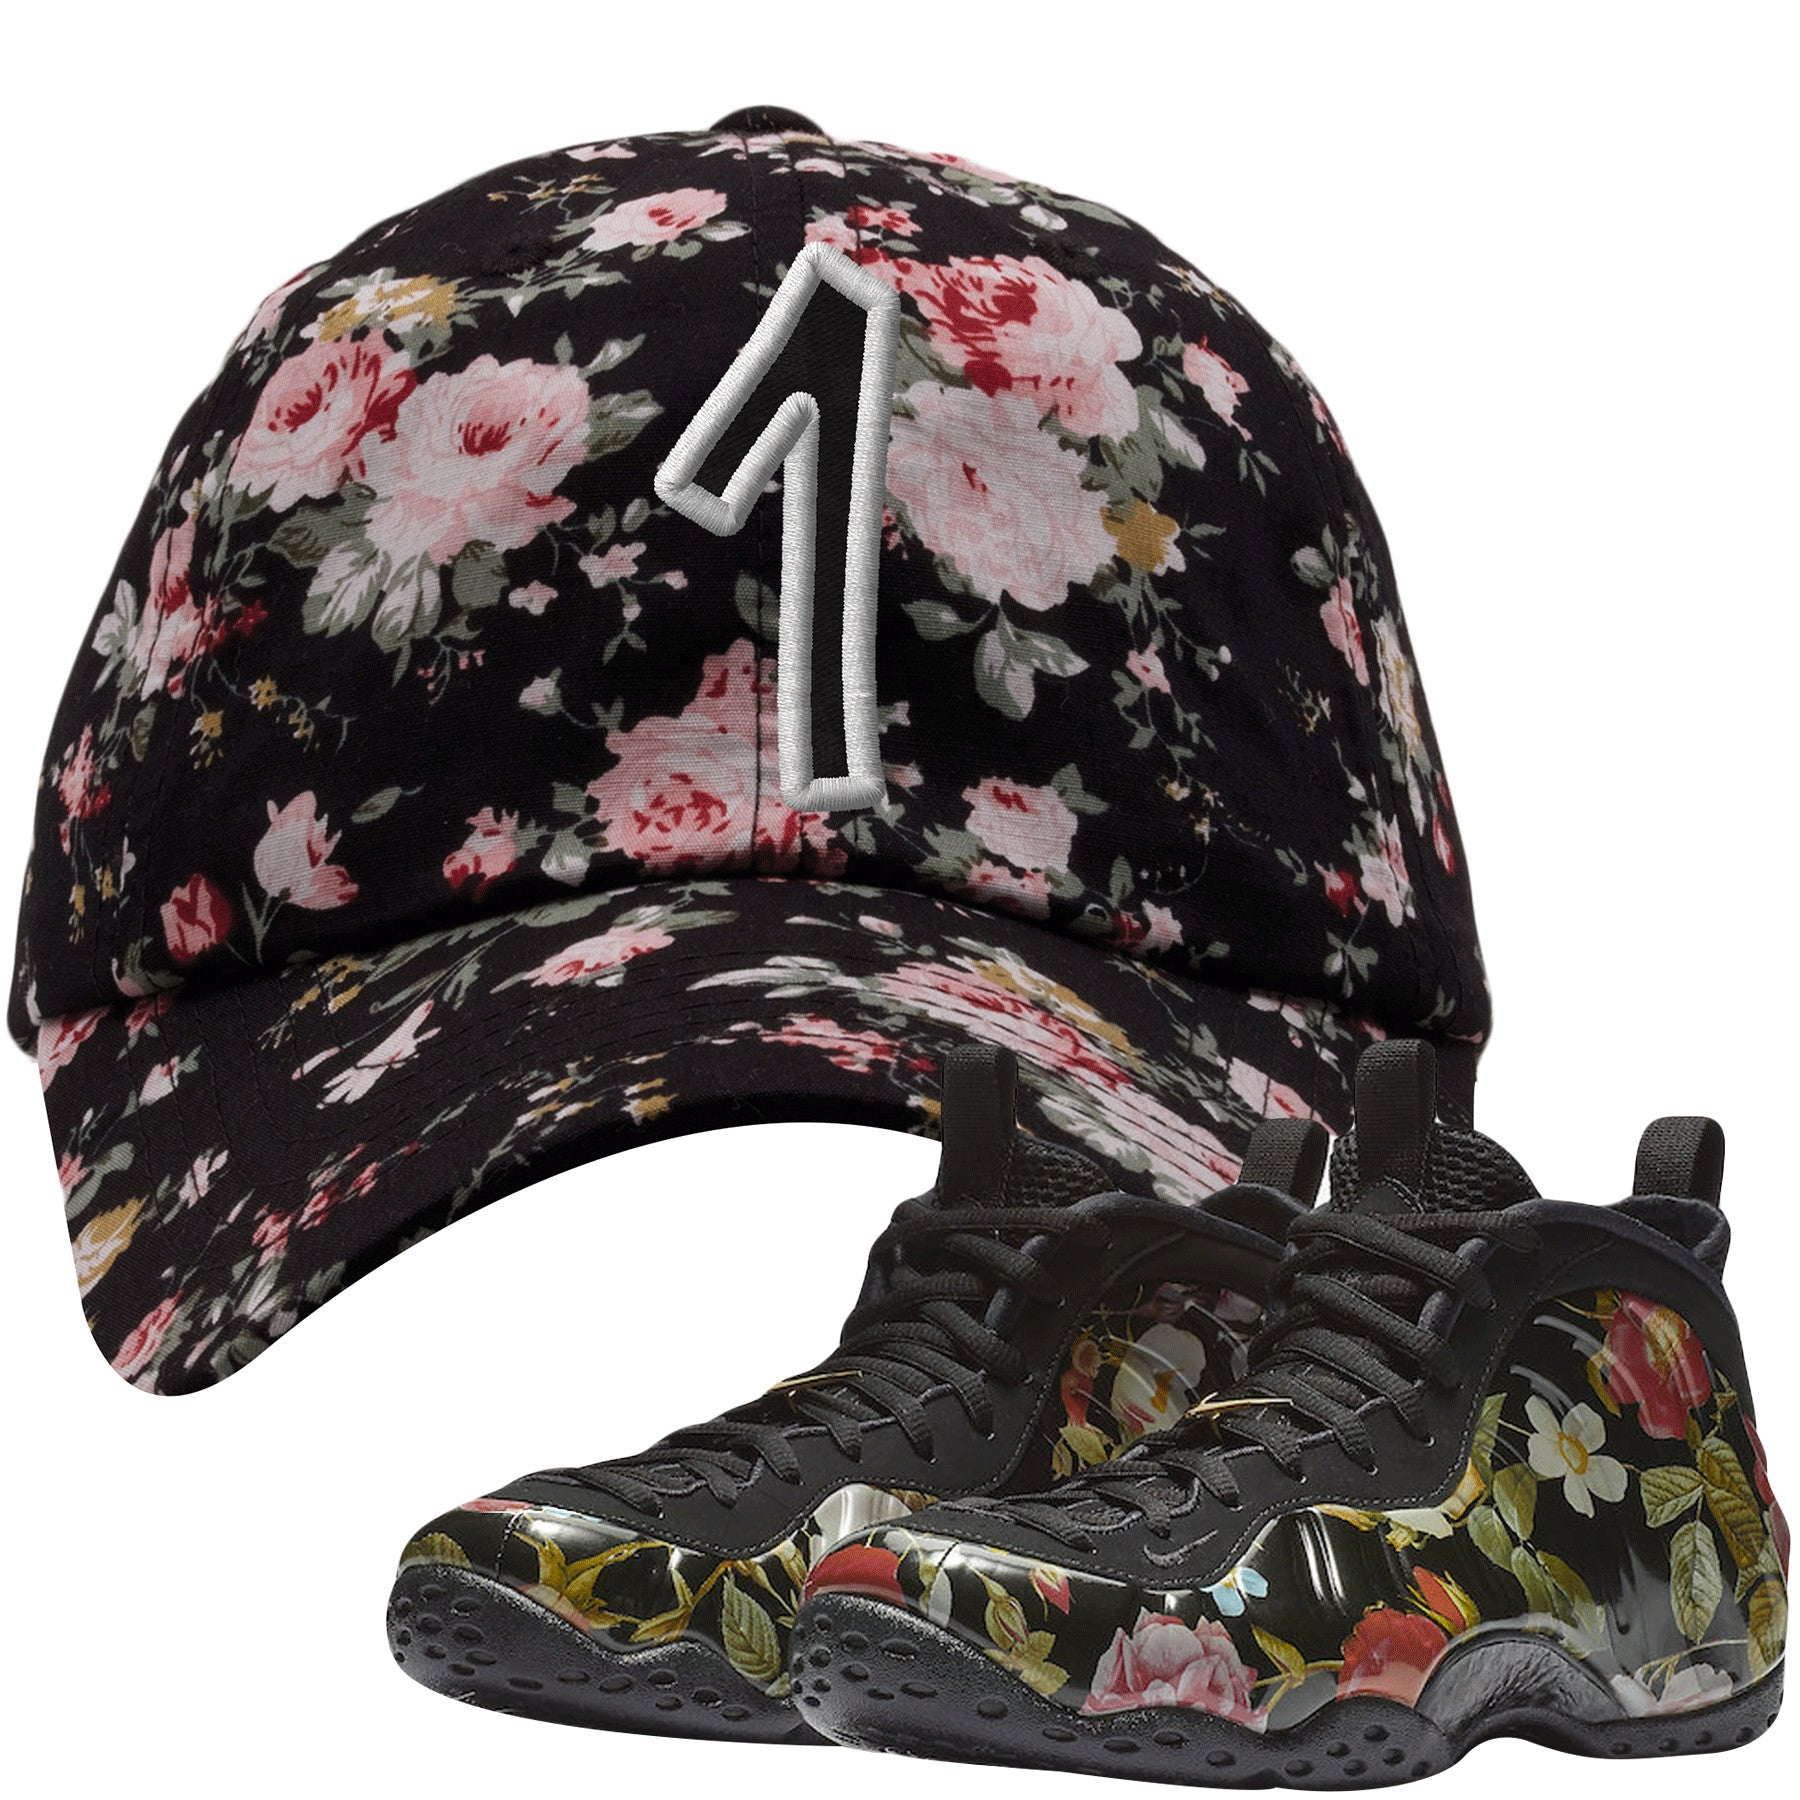 buy popular 373cf 902c6 Wear this sneaker matching hat to match your Air Foamposite One Floral  sneakers. Match your